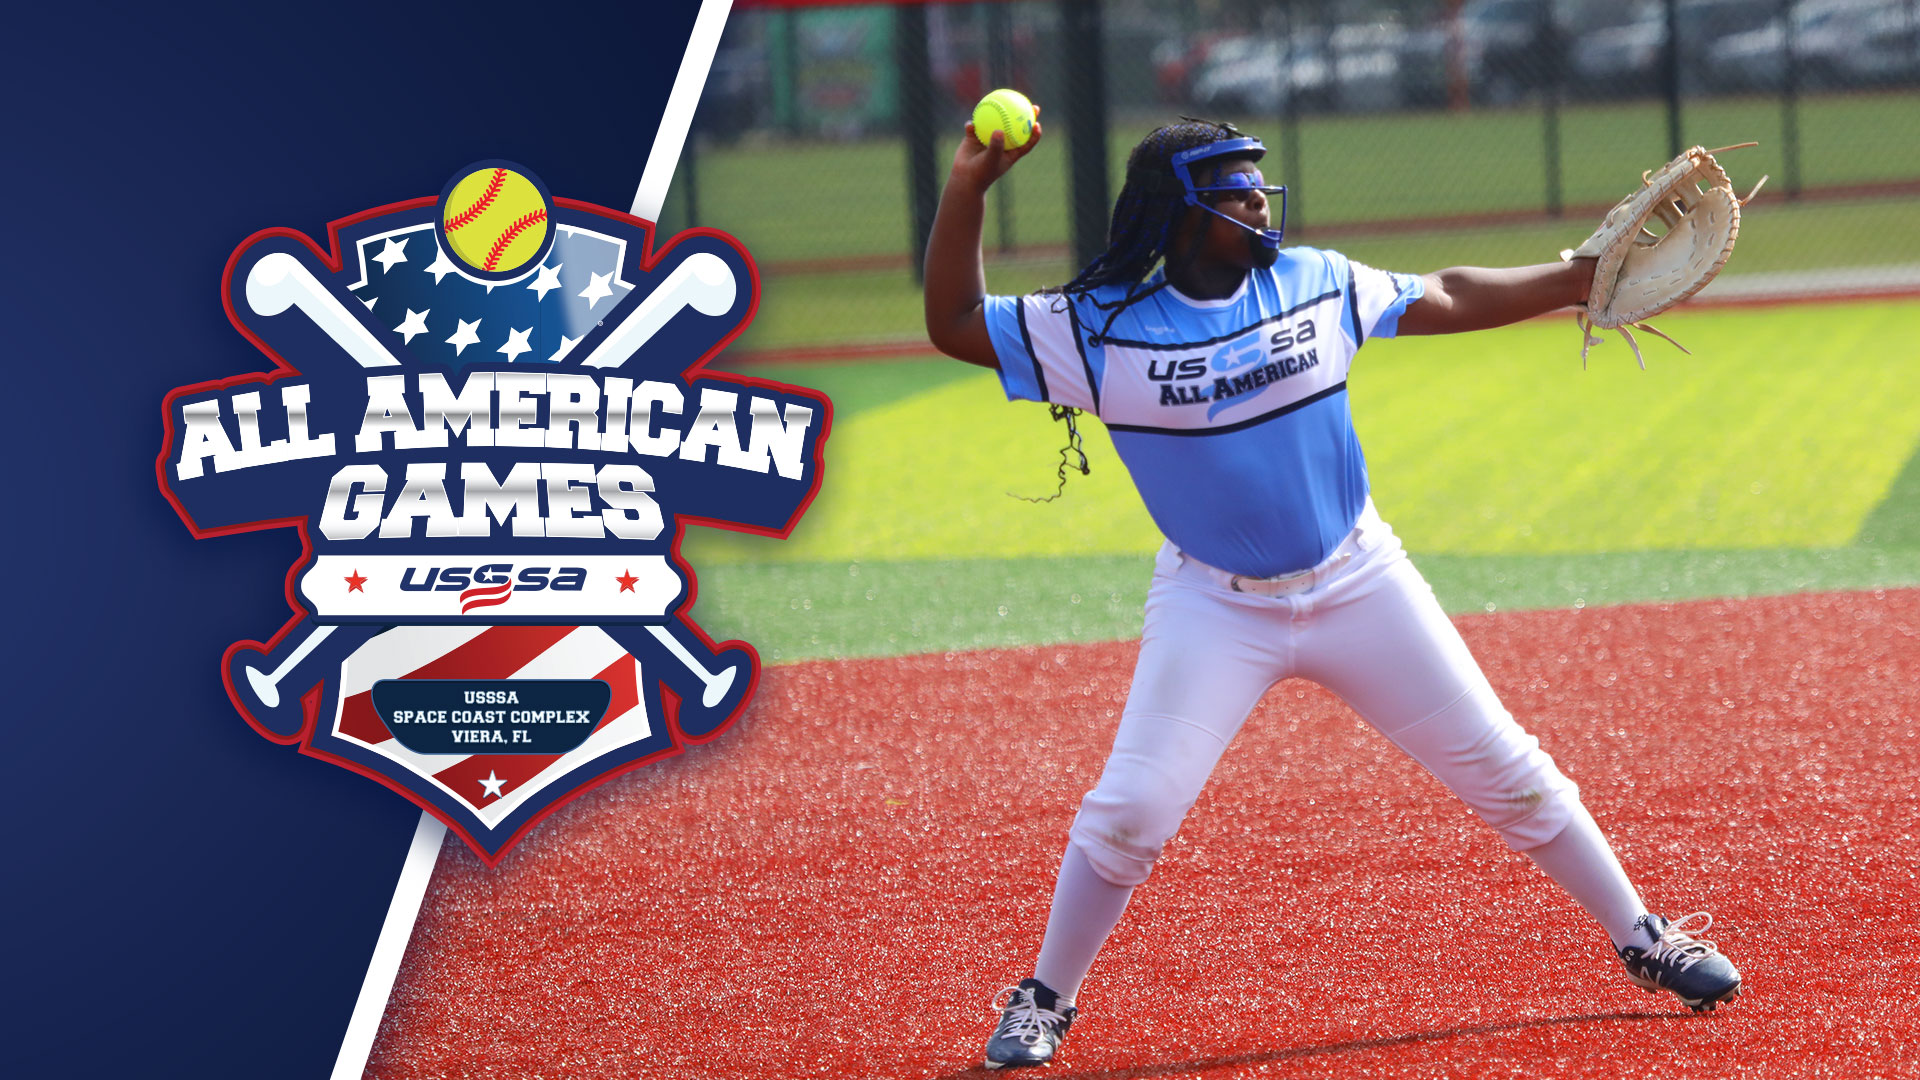 All American Games Fastpitch